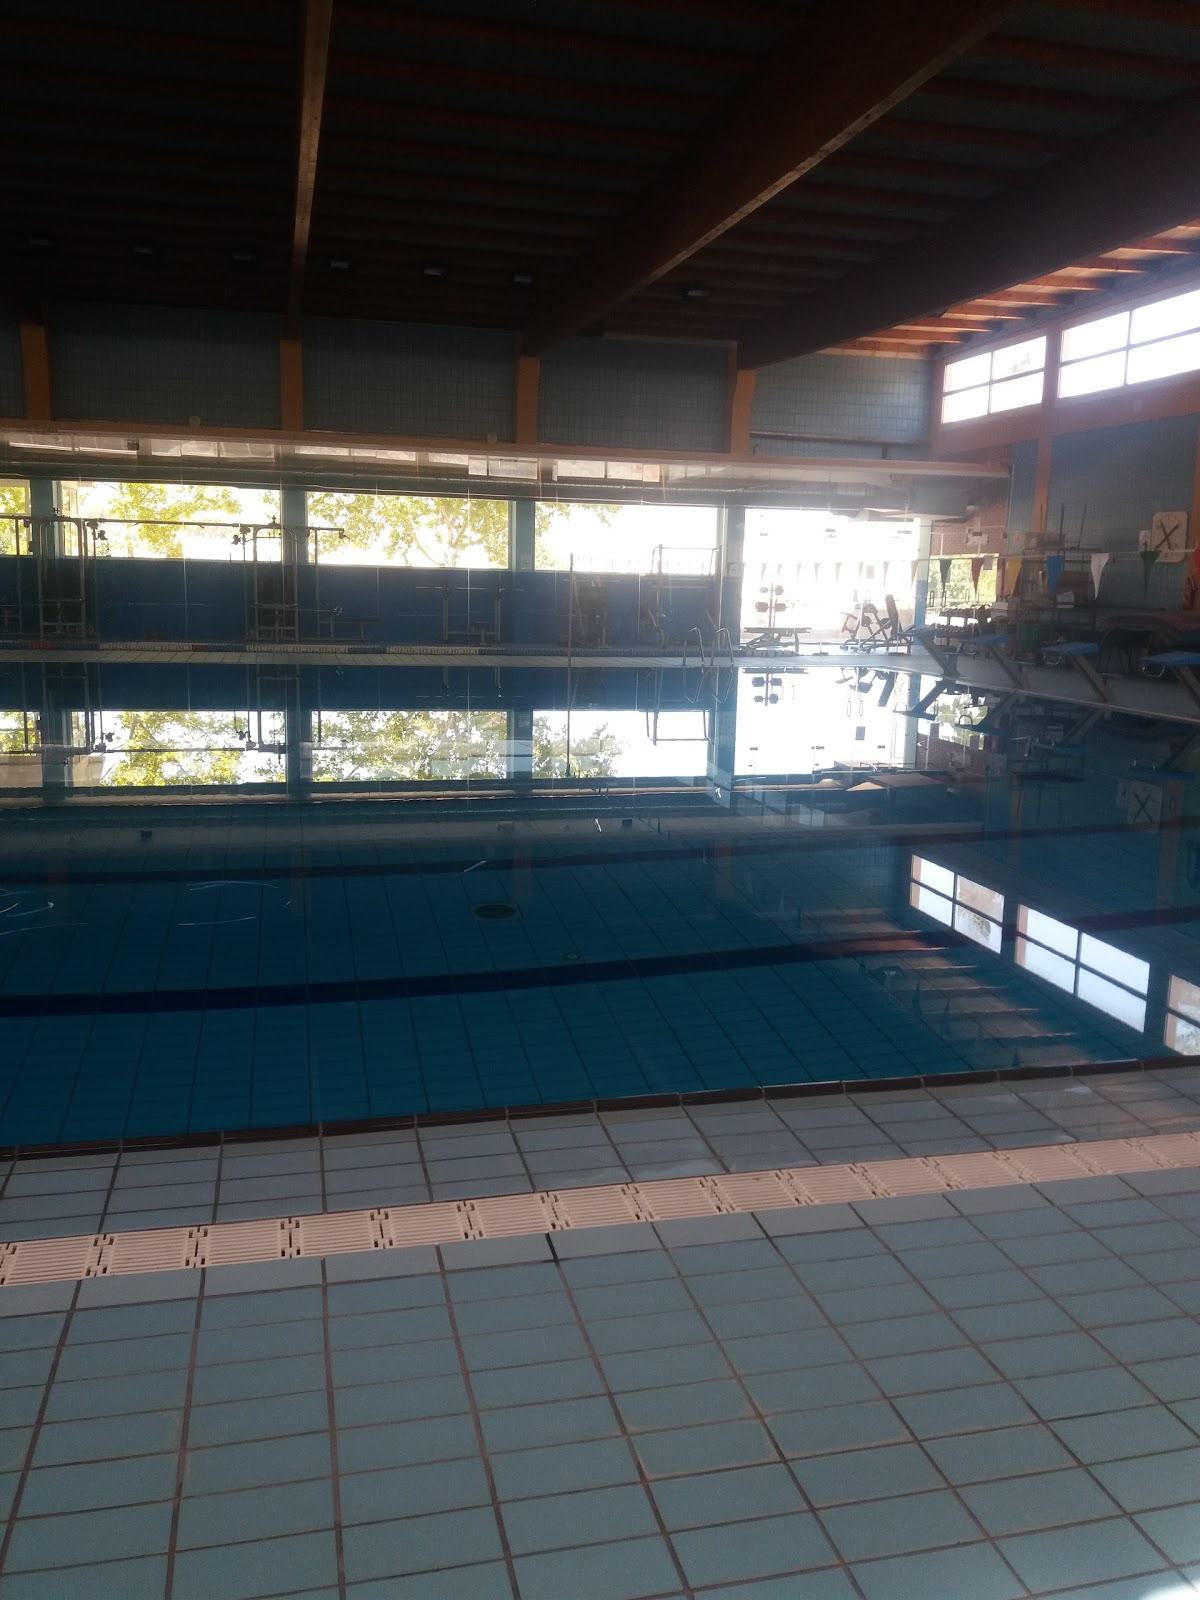 Piscina cuberta ontinyent - photo